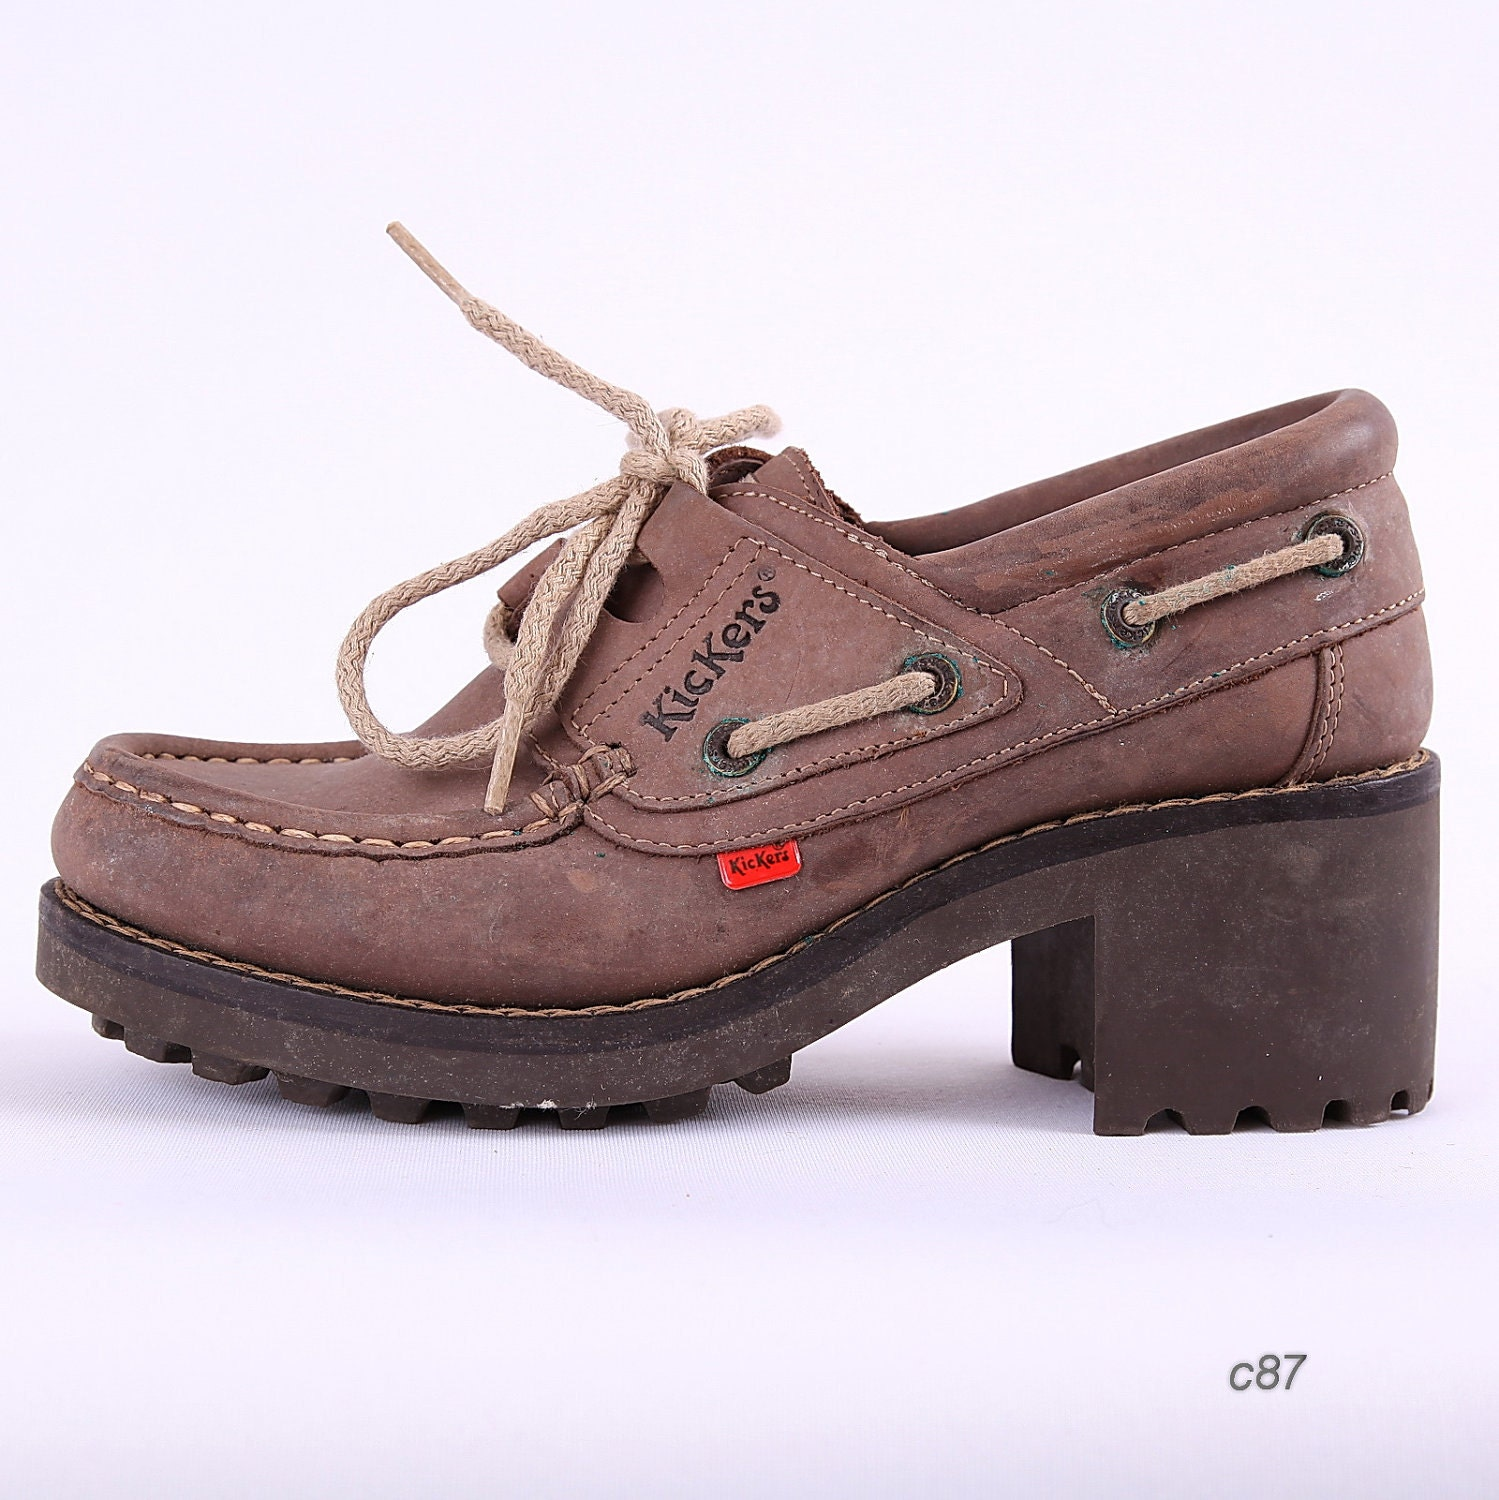 Kickers School Shoes Women